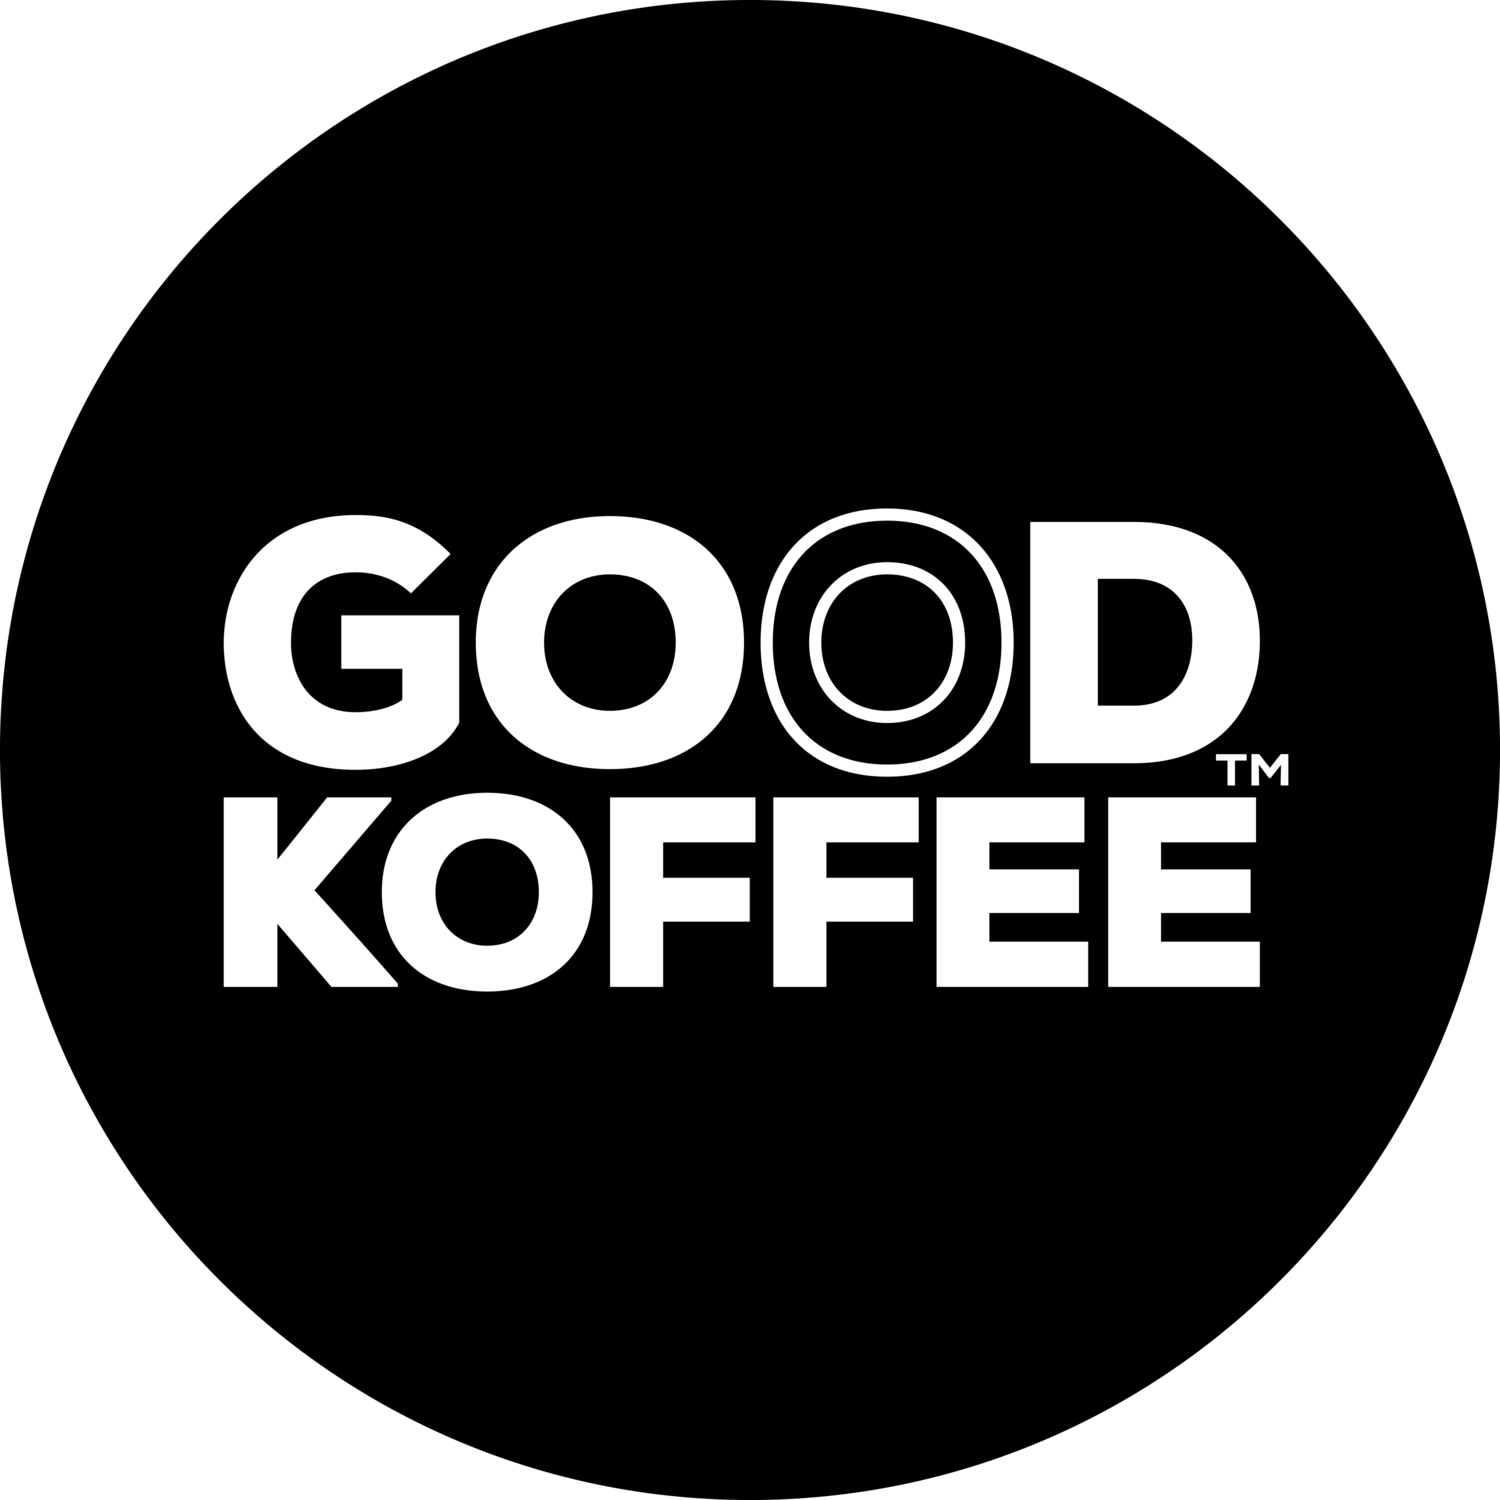 GOOD KOFFEE KOMBUCHA